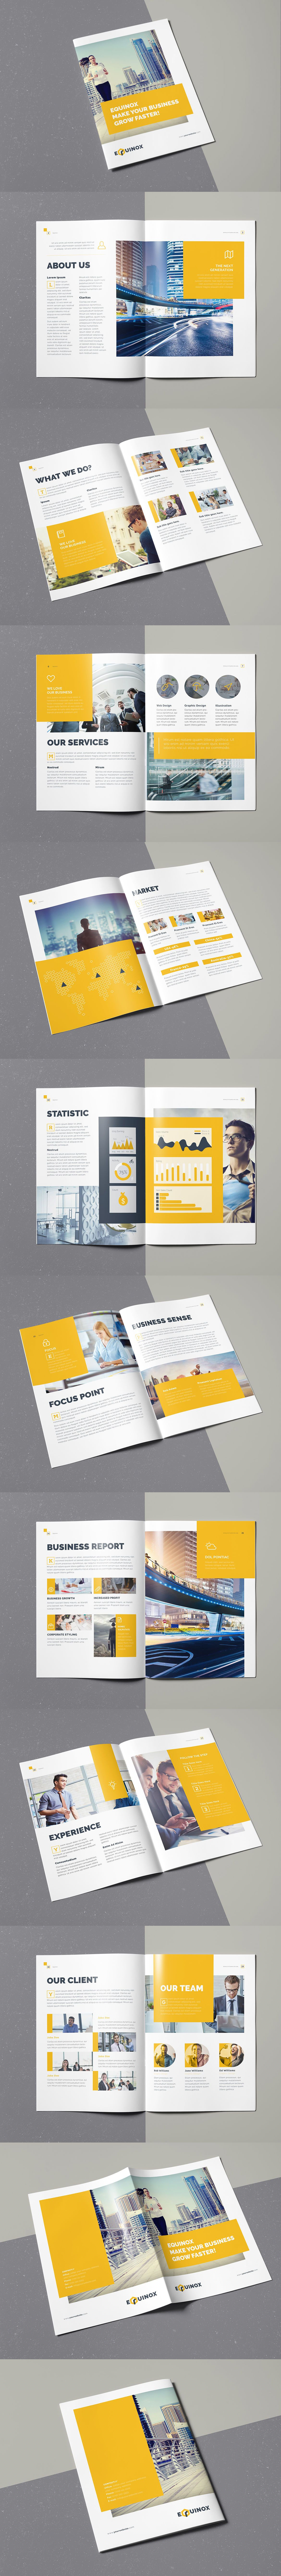 Equinox Brochure 20 Pages A4 Template InDesign INDD | KHS Newsletter ...